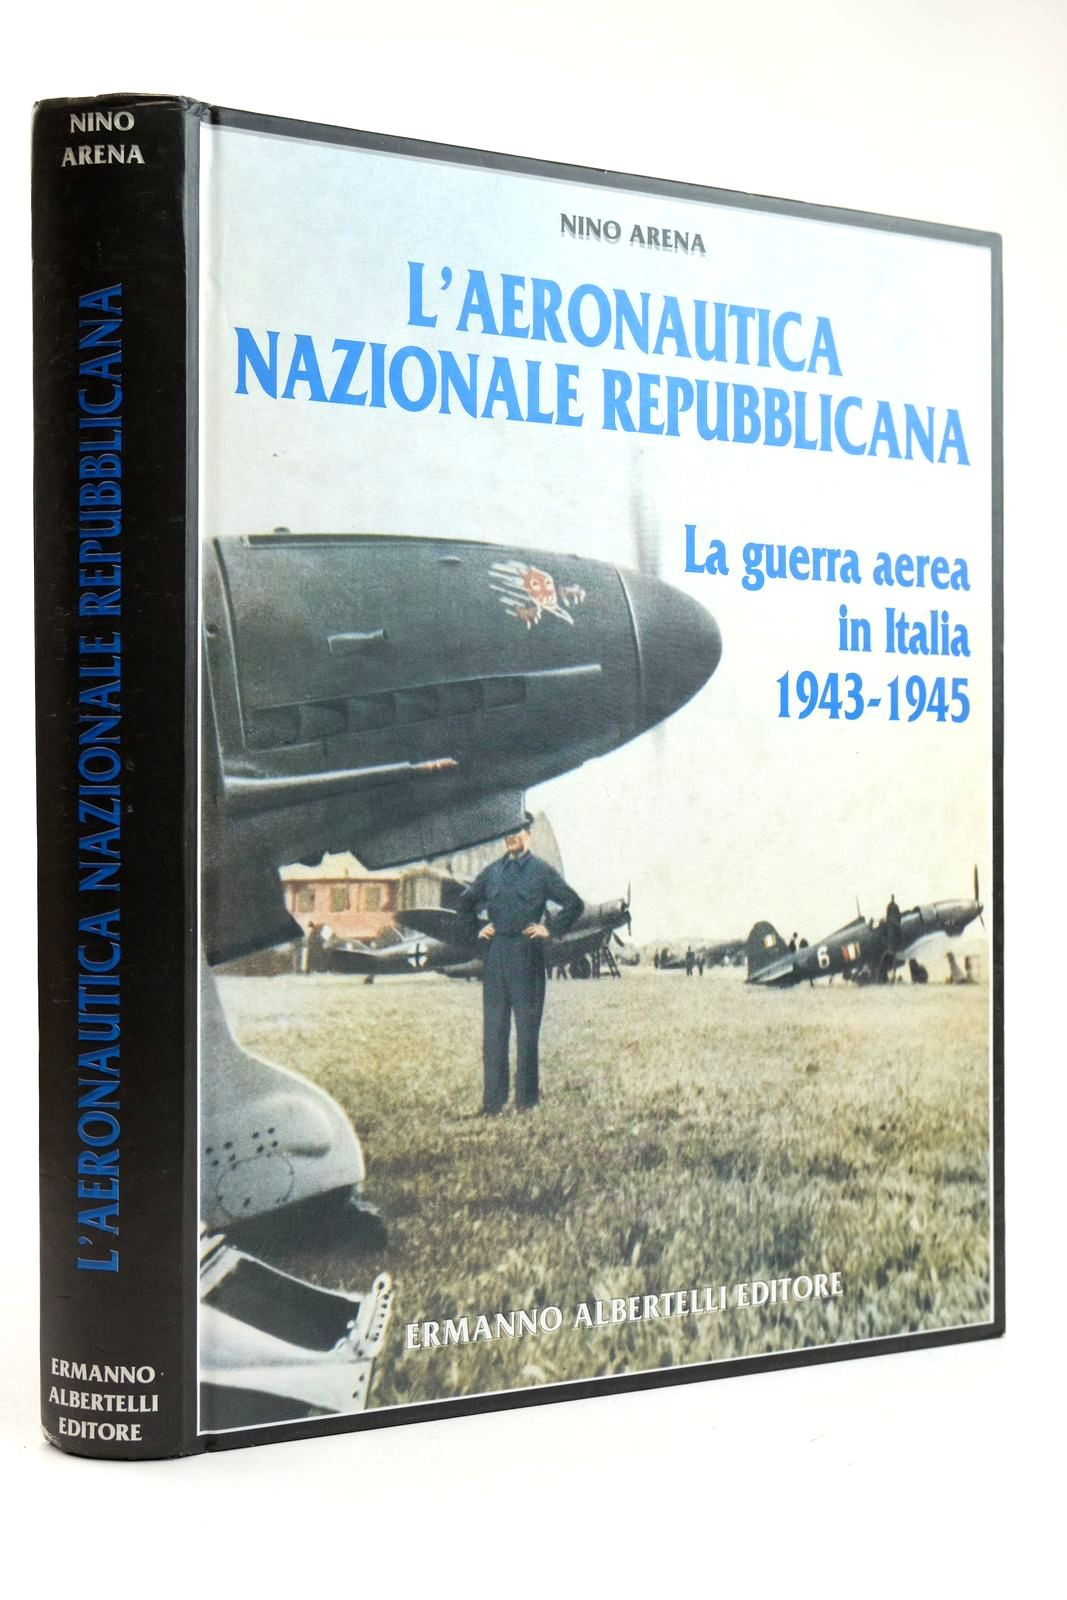 Photo of L'AERONAUTICA NAZIONALE REPUBBLICANA LA GUERRA AEREA IN ITALIA 1943-1945 written by Arena, Nino published by Ermanno Albertelli Editore (STOCK CODE: 2132188)  for sale by Stella & Rose's Books